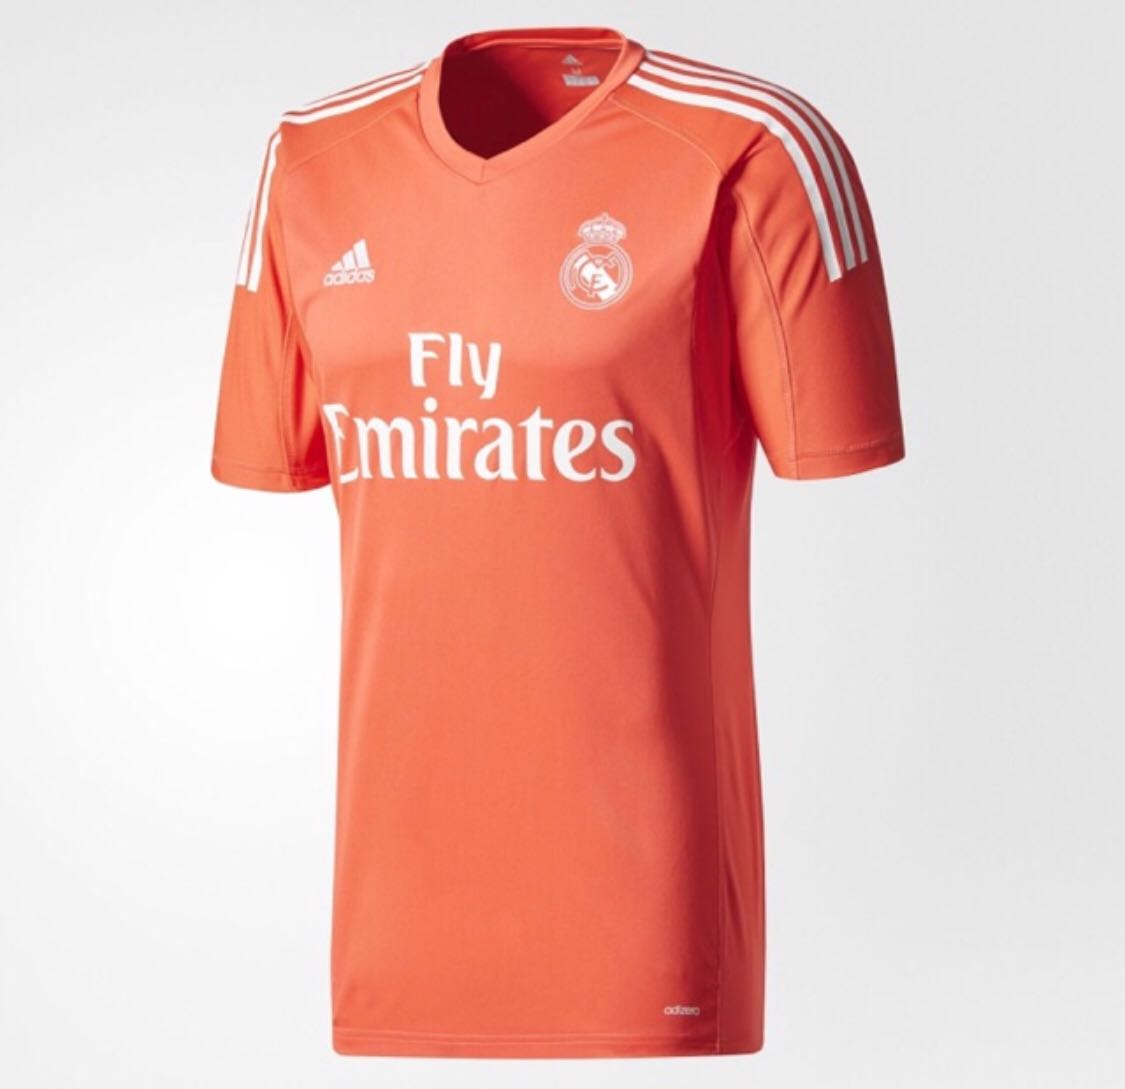 detailed look 9a2bb 253c7 Real Madrid keeper jersey